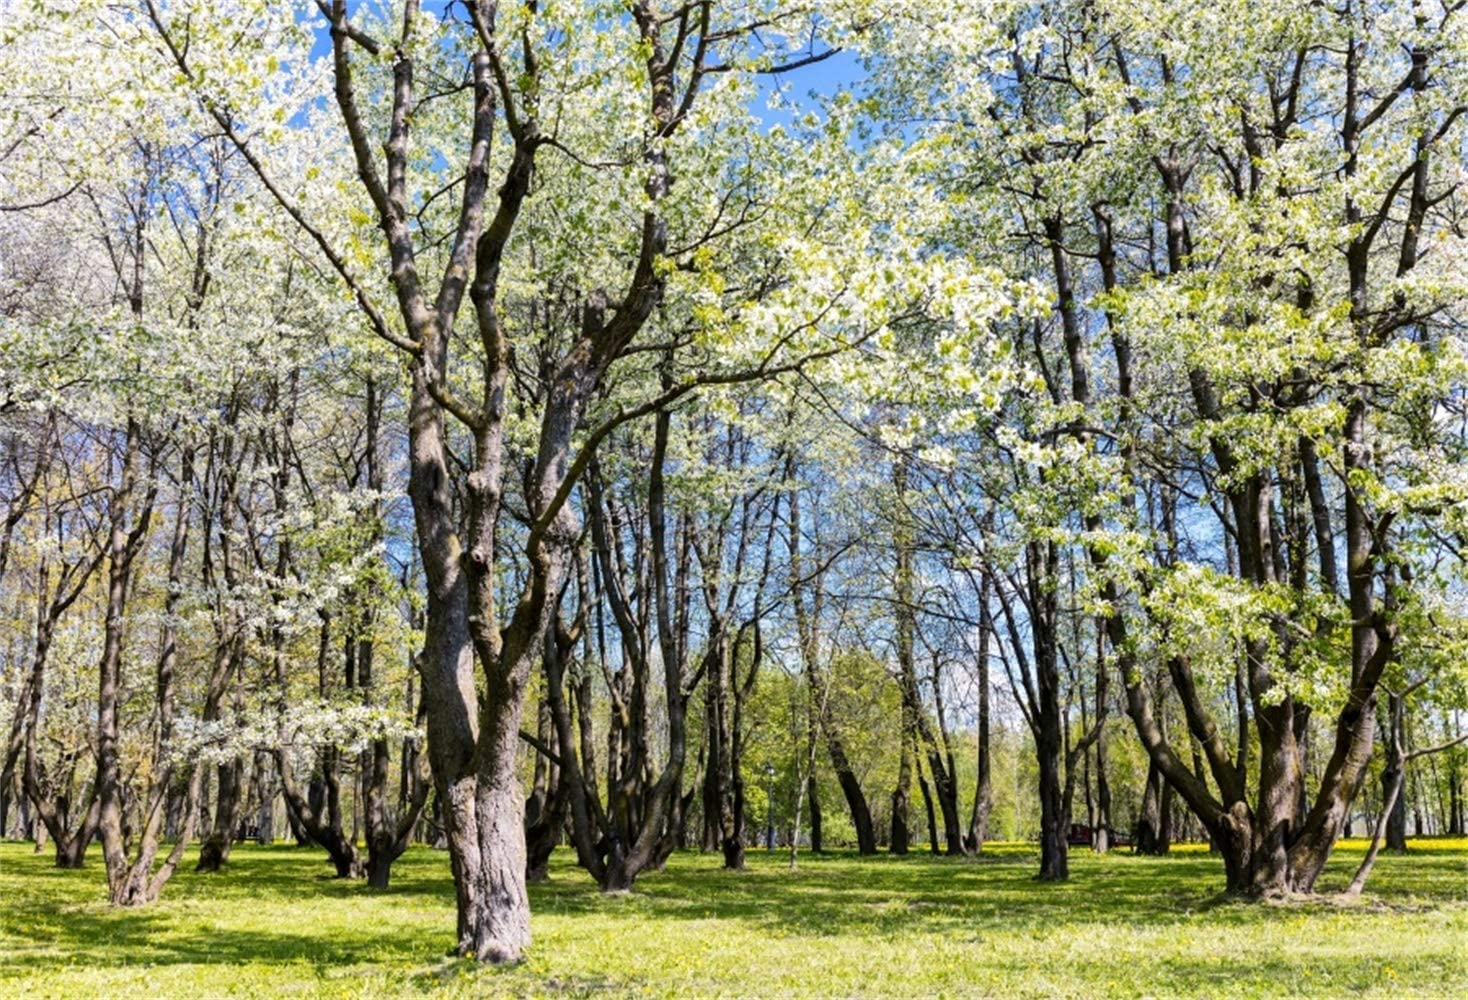 10x6.5ft Spring Park Blooming Tall Trees Lush Wood Grassland Landscape Backdrop Polyester Nature Scenery Background Child Adult Bride Family Portrait Shoot Scenic Wallpaper Spring Outing Picnic